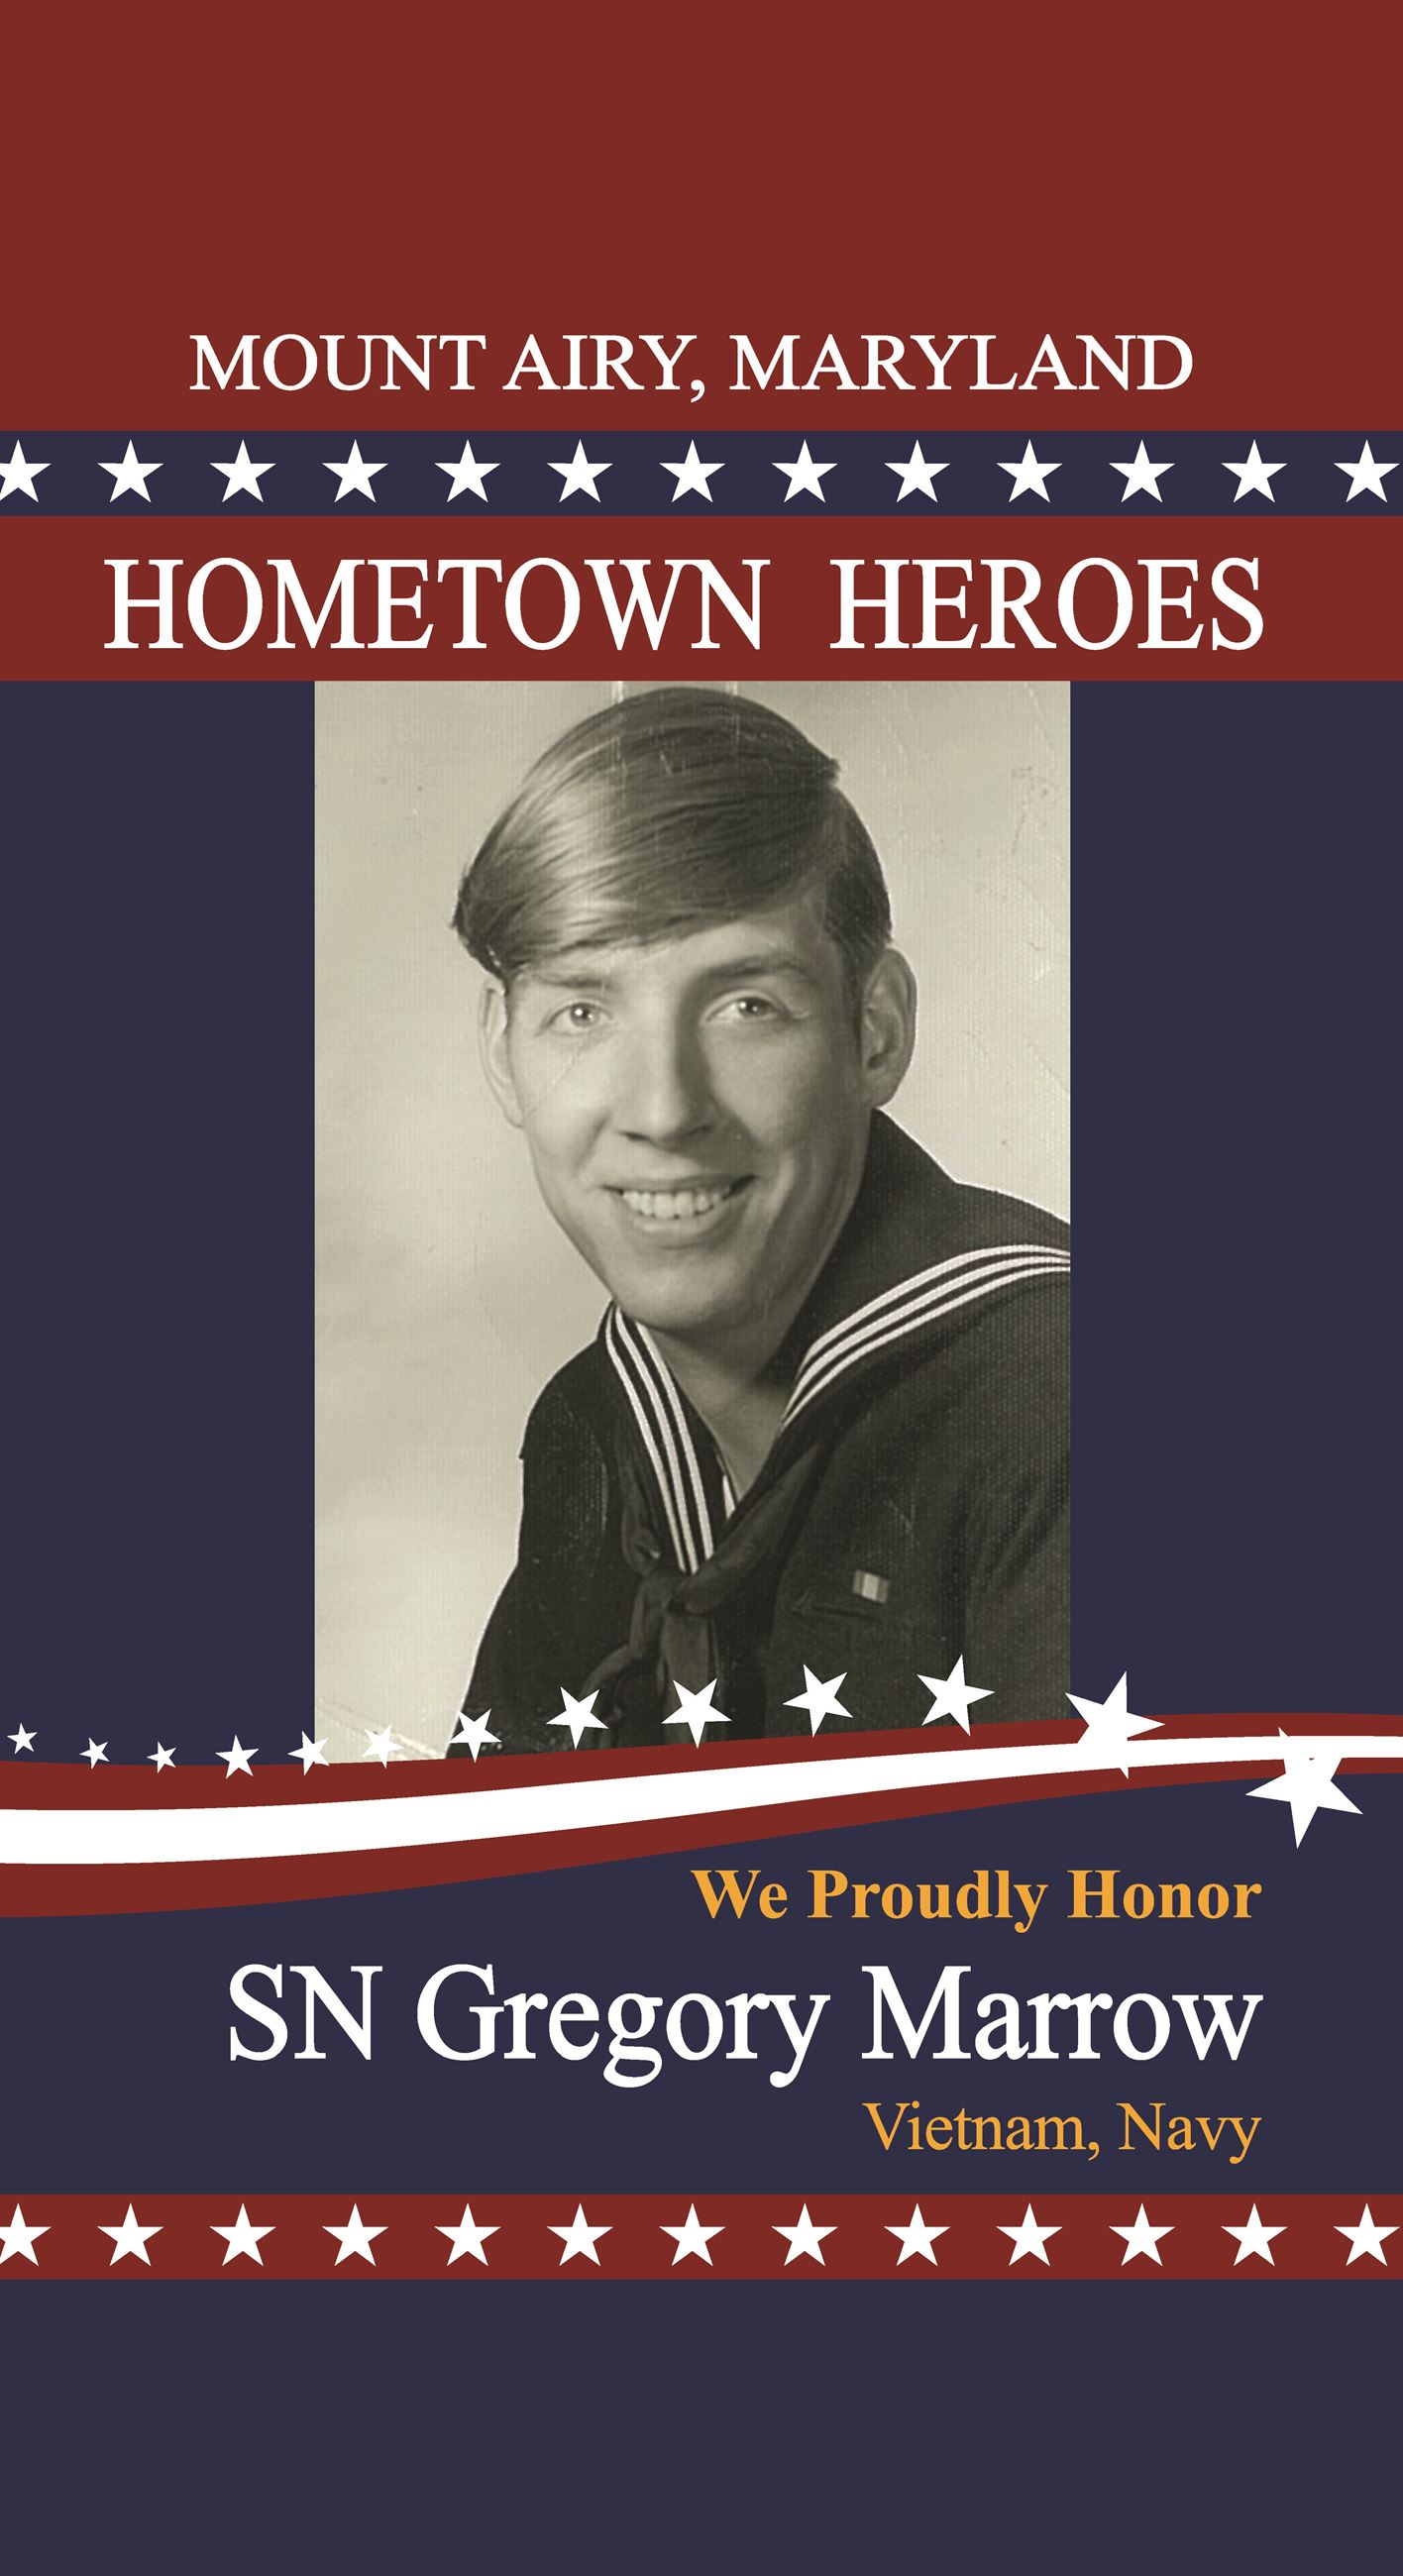 GregoryMarrow_MtAiryHeroes-Flag-24x44-Proof002